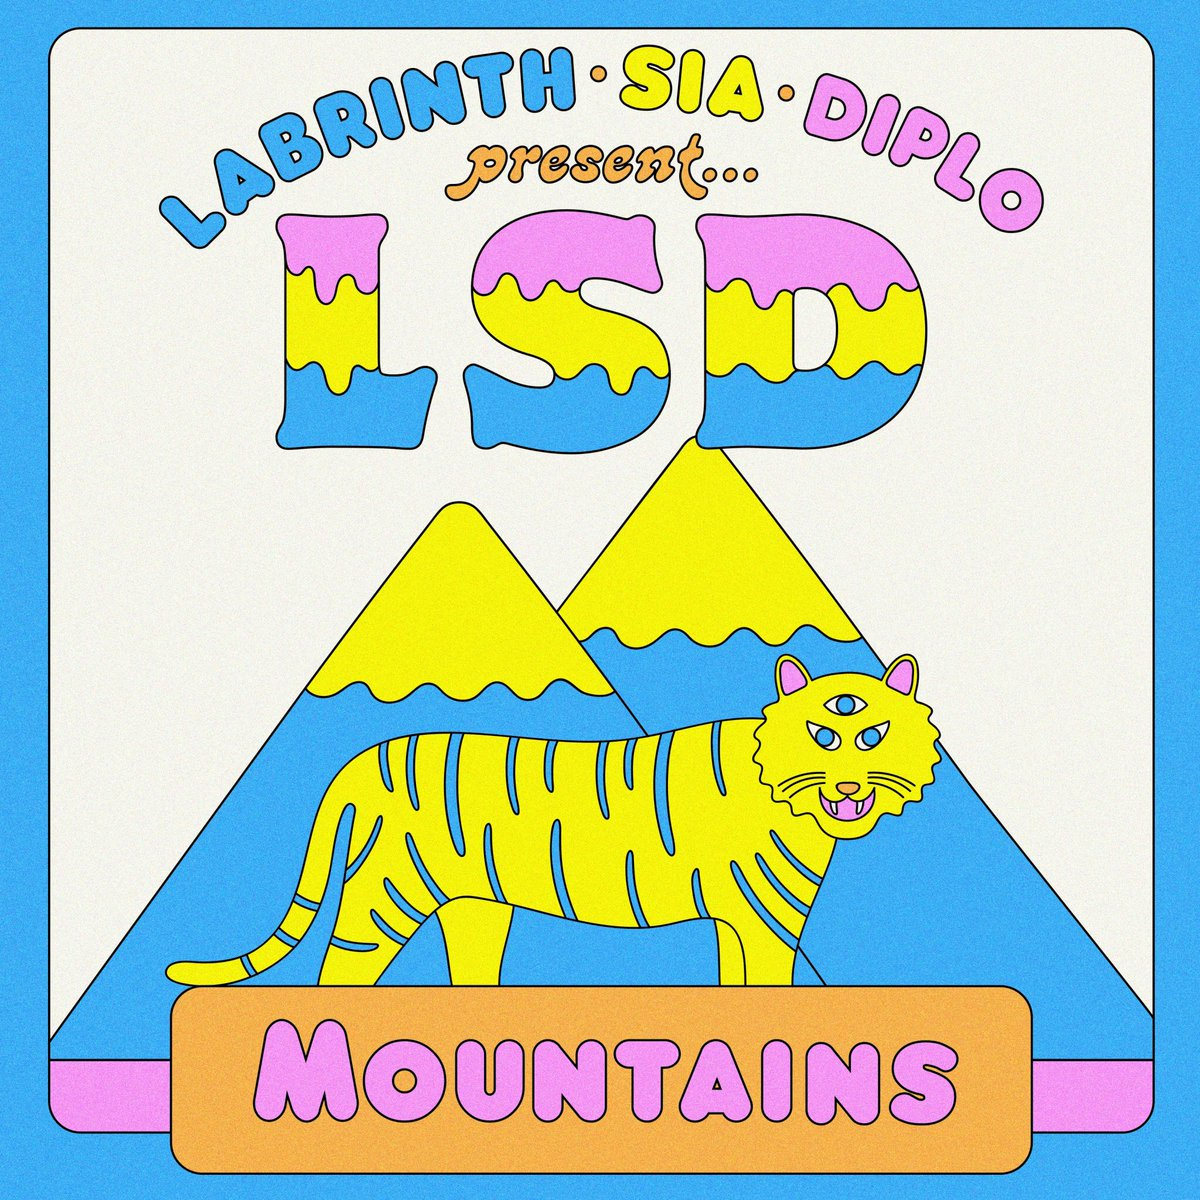 RT @Labrinth: Tune into @Beats1 with @ZaneLowe at 12pm ET to hear #Mountains ????️ https://t.co/aeL7qeVDoD https://t.co/zcWFBd7M6S